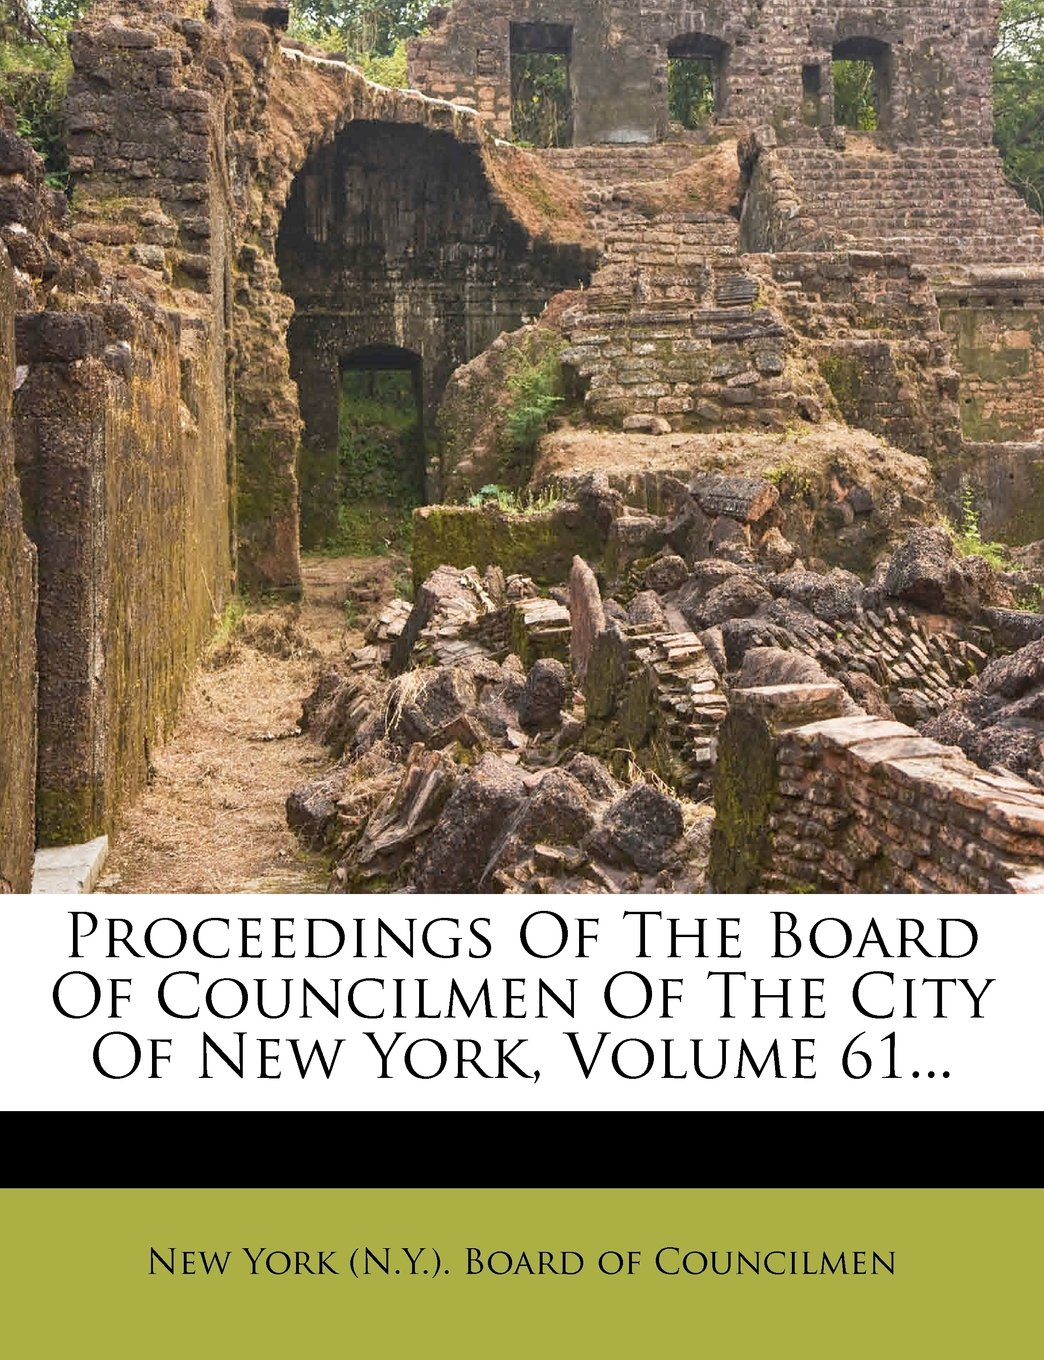 Download Proceedings Of The Board Of Councilmen Of The City Of New York, Volume 61... ebook